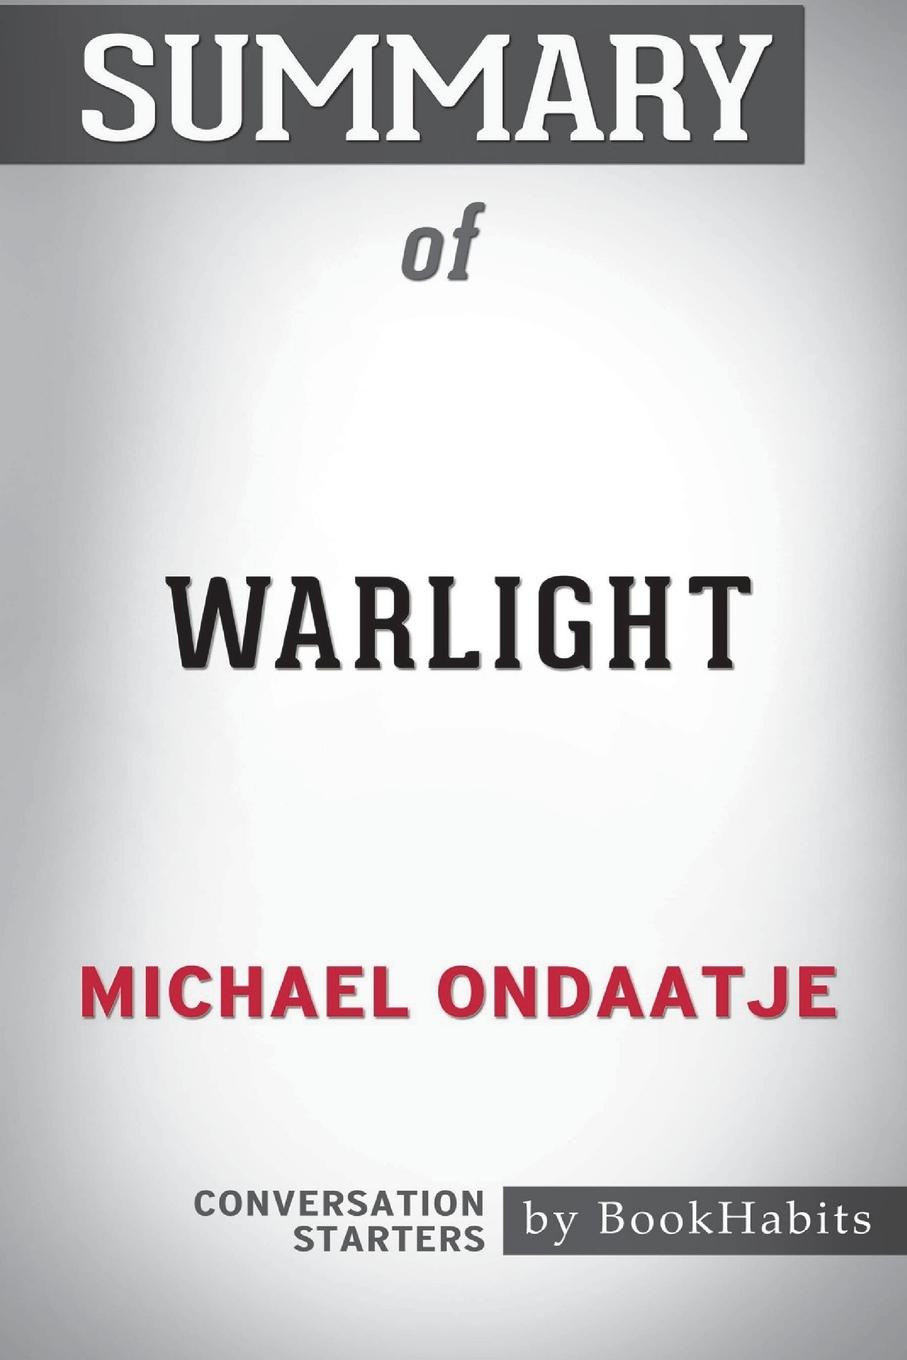 BookHabits Summary of Warlight by Michael Ondaatje. Conversation Starters warlight